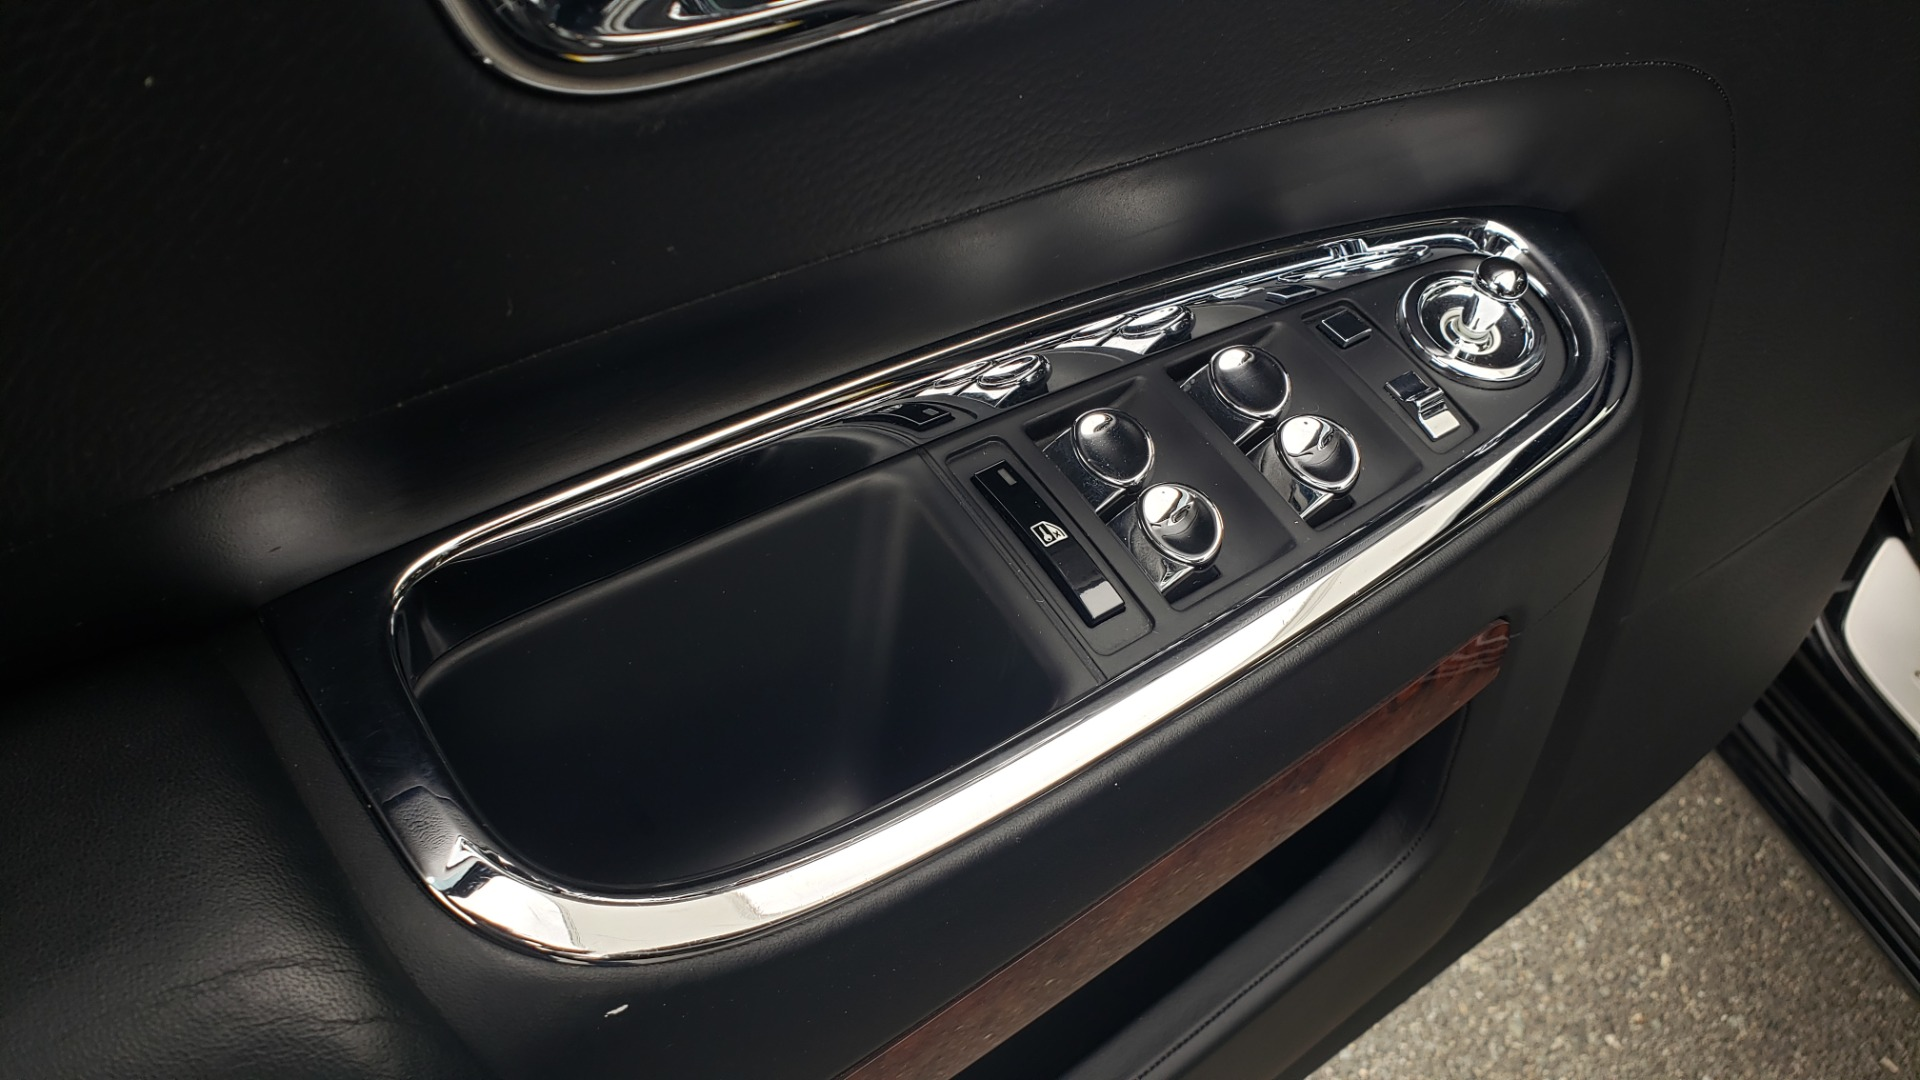 Used 2010 Rolls-Royce GHOST 6.6L TURBO V12 (563HP) / NAV / SUNROOF / SUICIDE DOORS for sale $89,000 at Formula Imports in Charlotte NC 28227 15